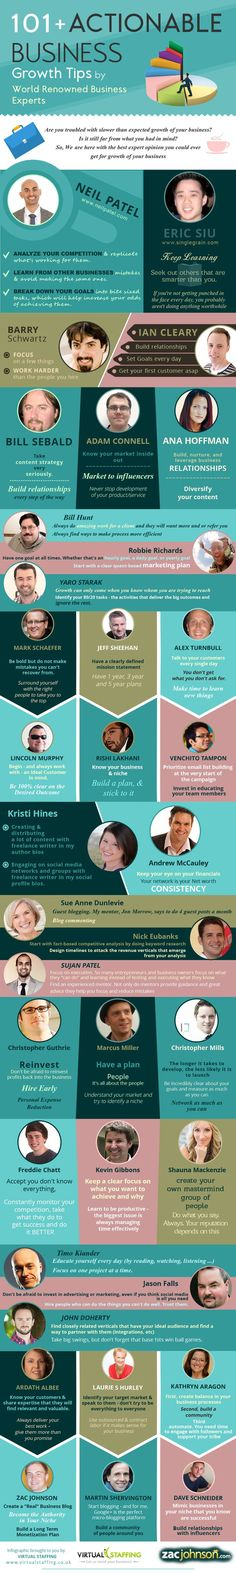 101 Actionable Business Growth Tips From Digital Marketing Experts [Infographic] — Medium Business Advice, Start Up Business, Business Planning, Online Business, Insurance Business, Career Advice, Business Marketing, Content Marketing, Online Marketing